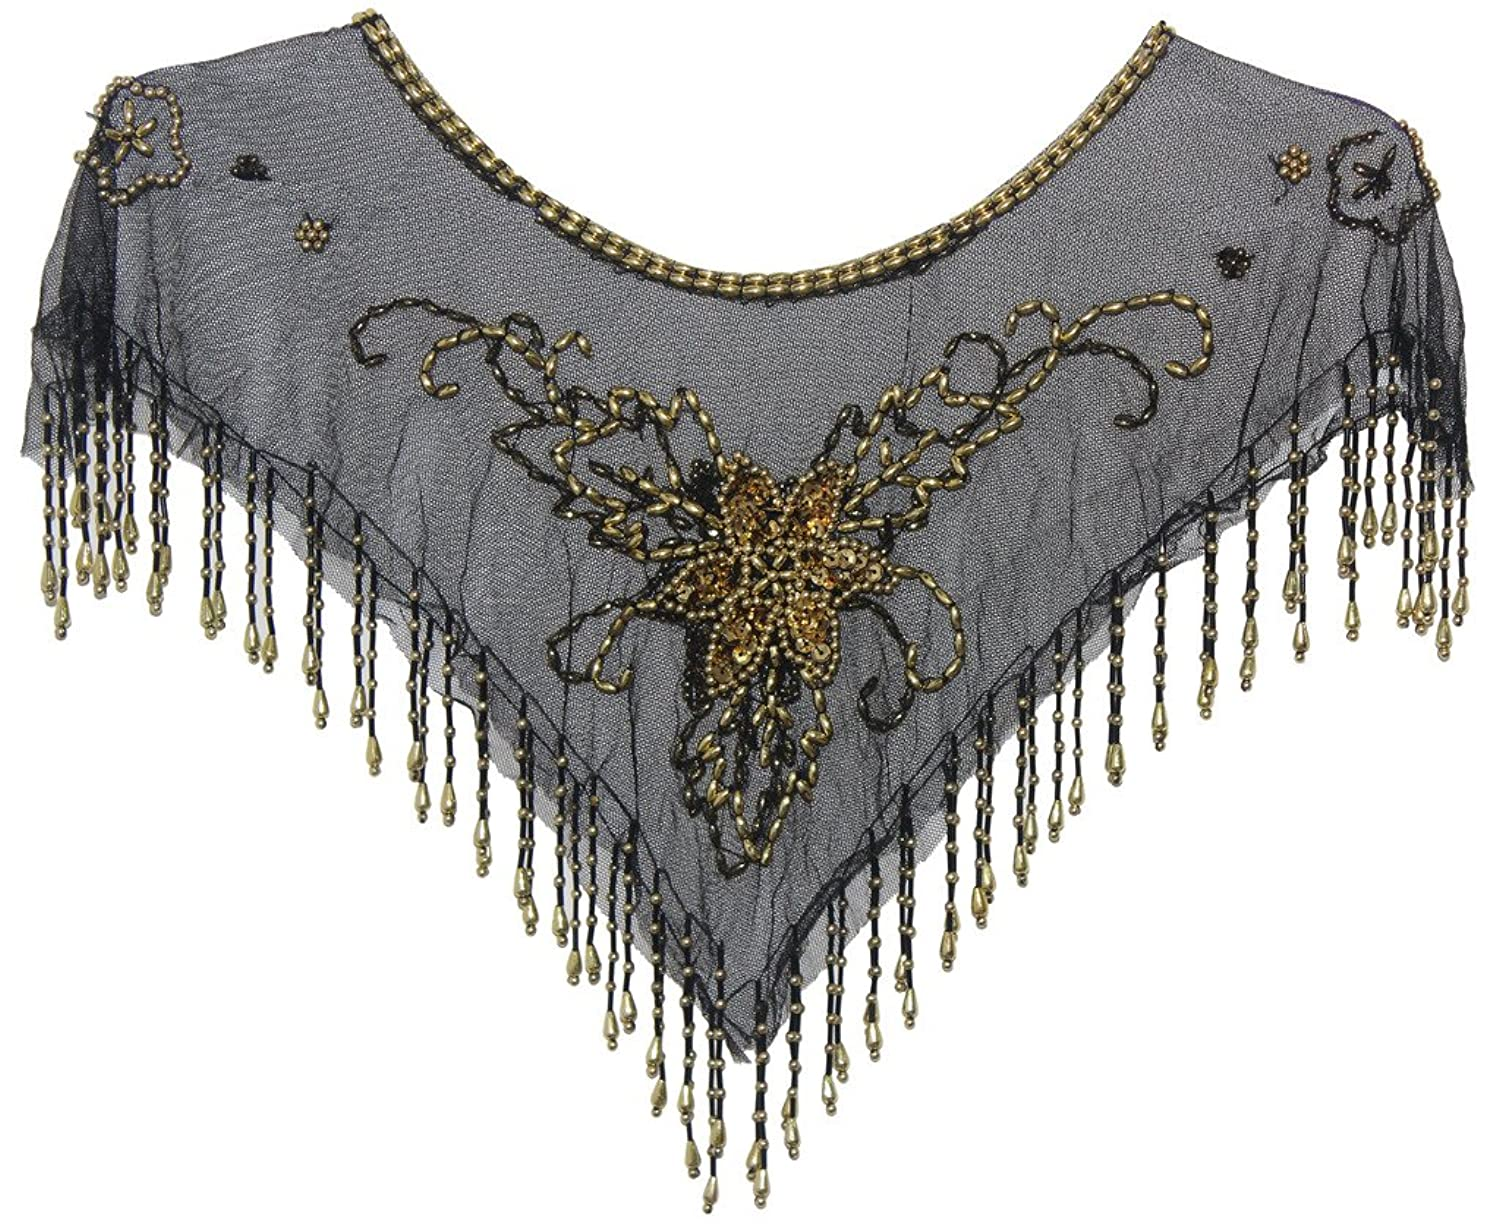 1920s Style Wraps  Beaded Mesh Shawl Dance Poncho Capelet $15.99 AT vintagedancer.com